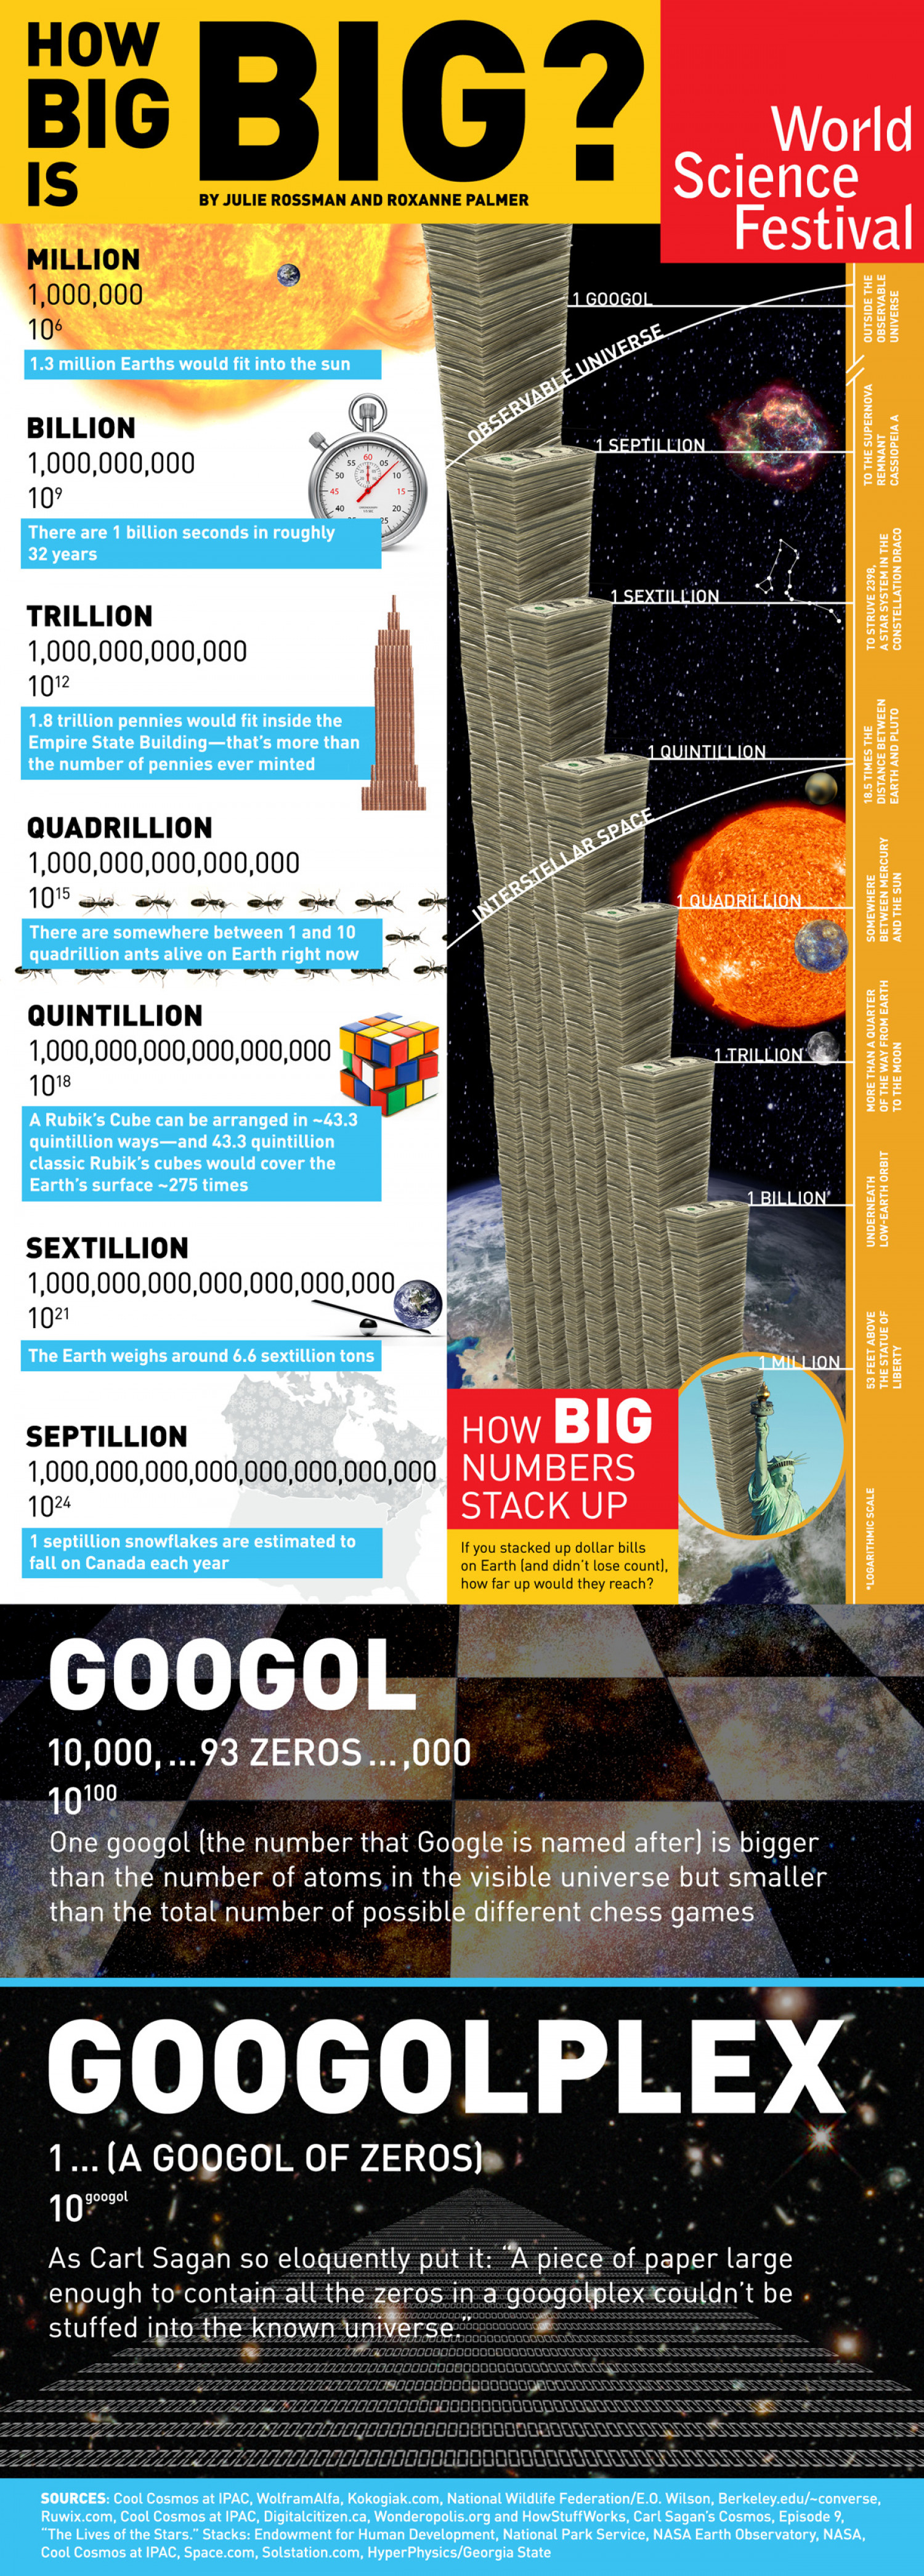 How Big is a Big Number? Infographic